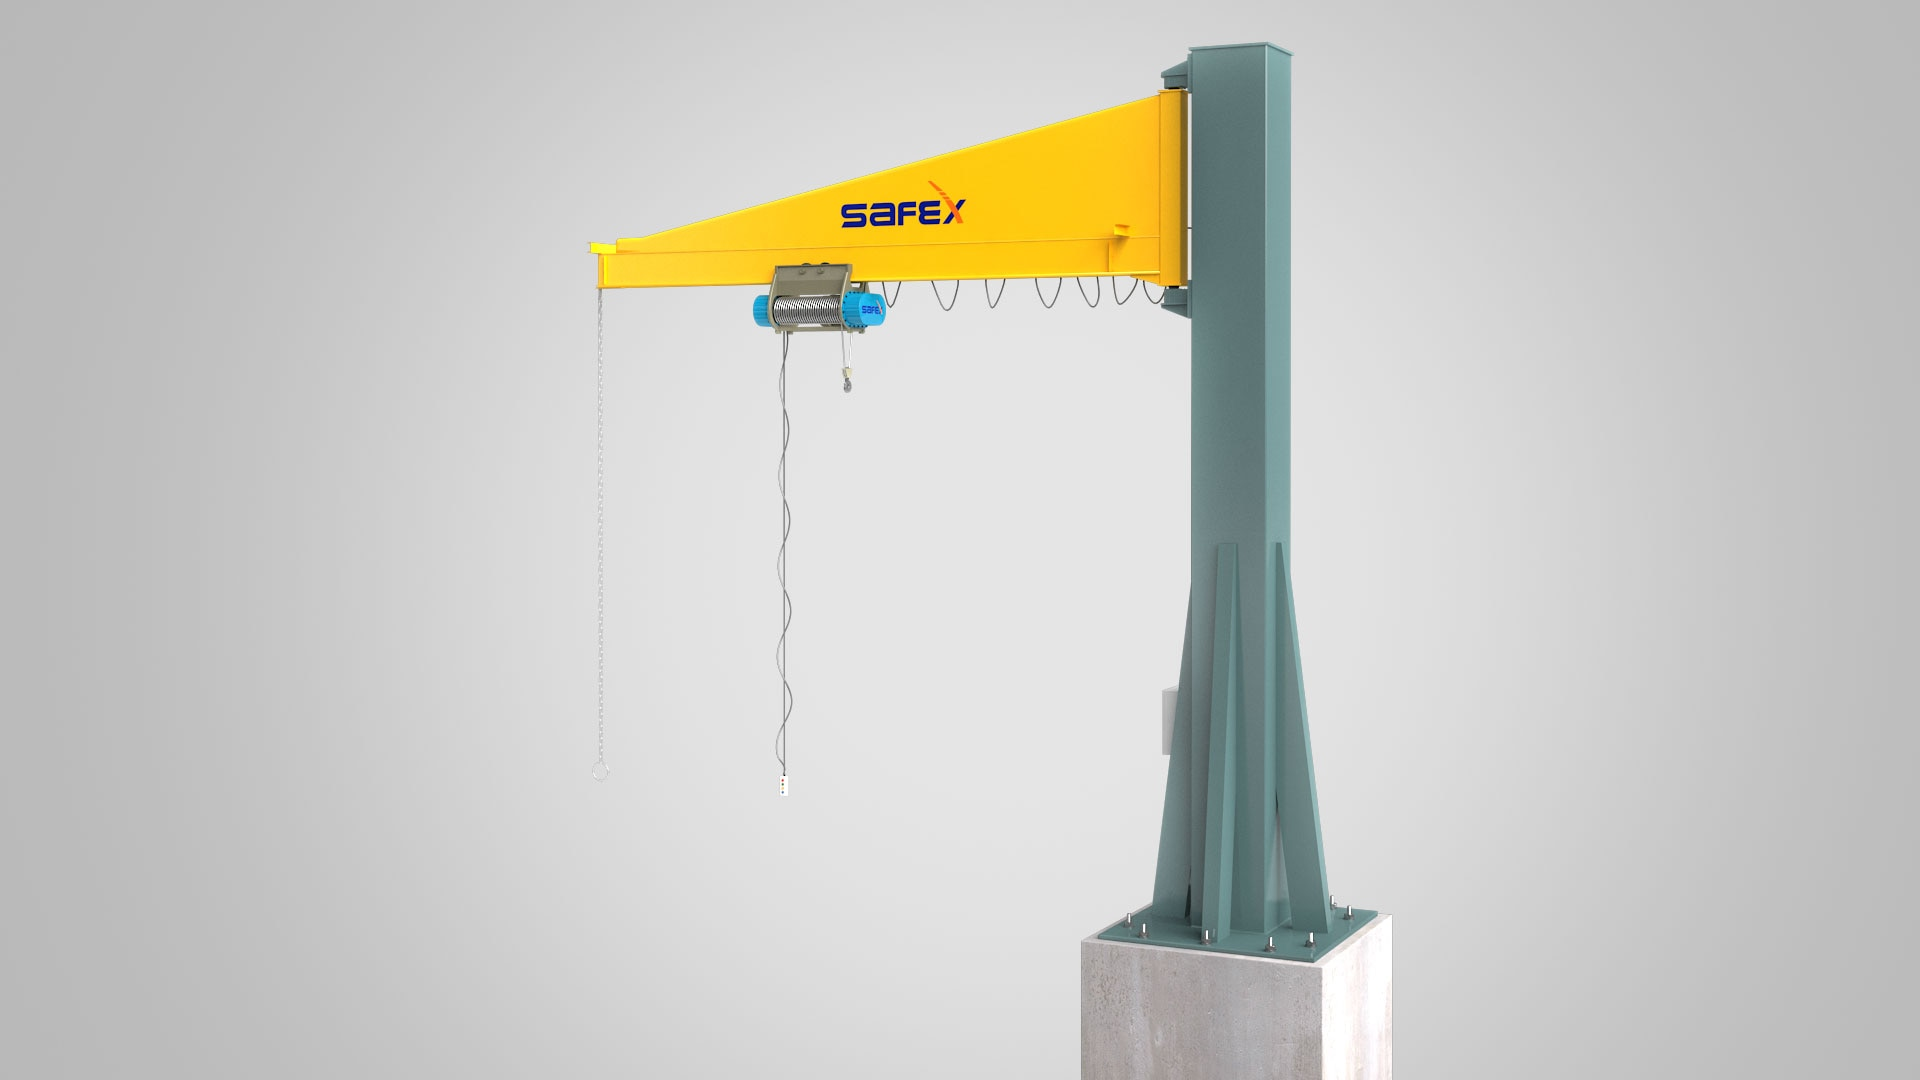 JIB CRANE Manufacturer : Safex Cranes is the Leading Manufacturer., Supplier and Exporter of JIB Cranes Across the Globe.